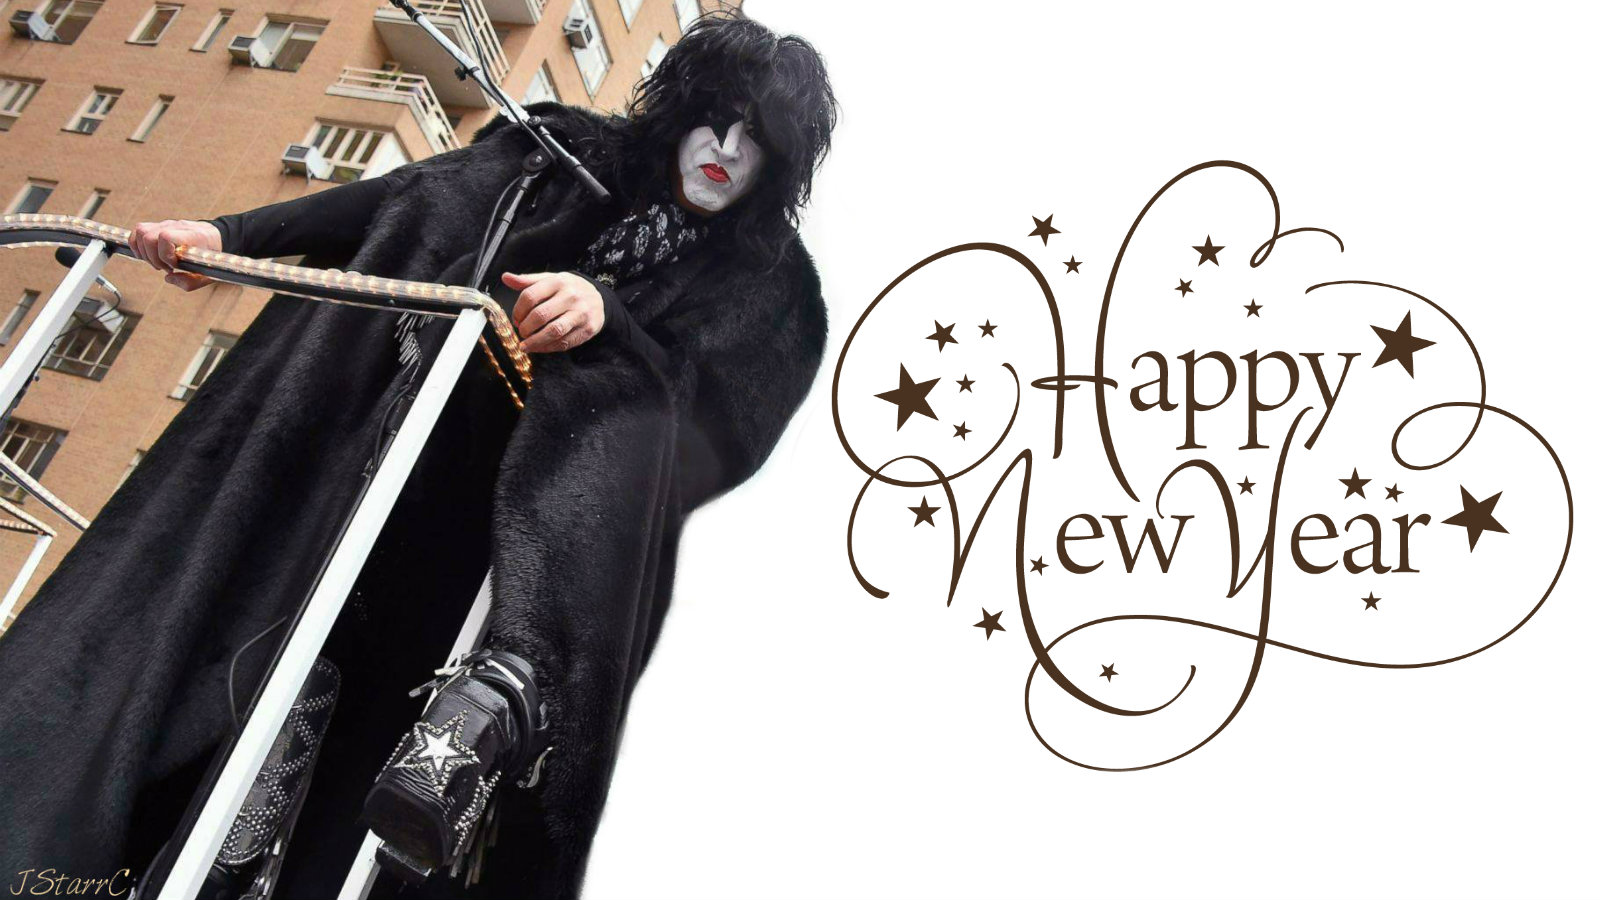 Happy New Year - KISS Wallpaper (39171155) - Fanpop